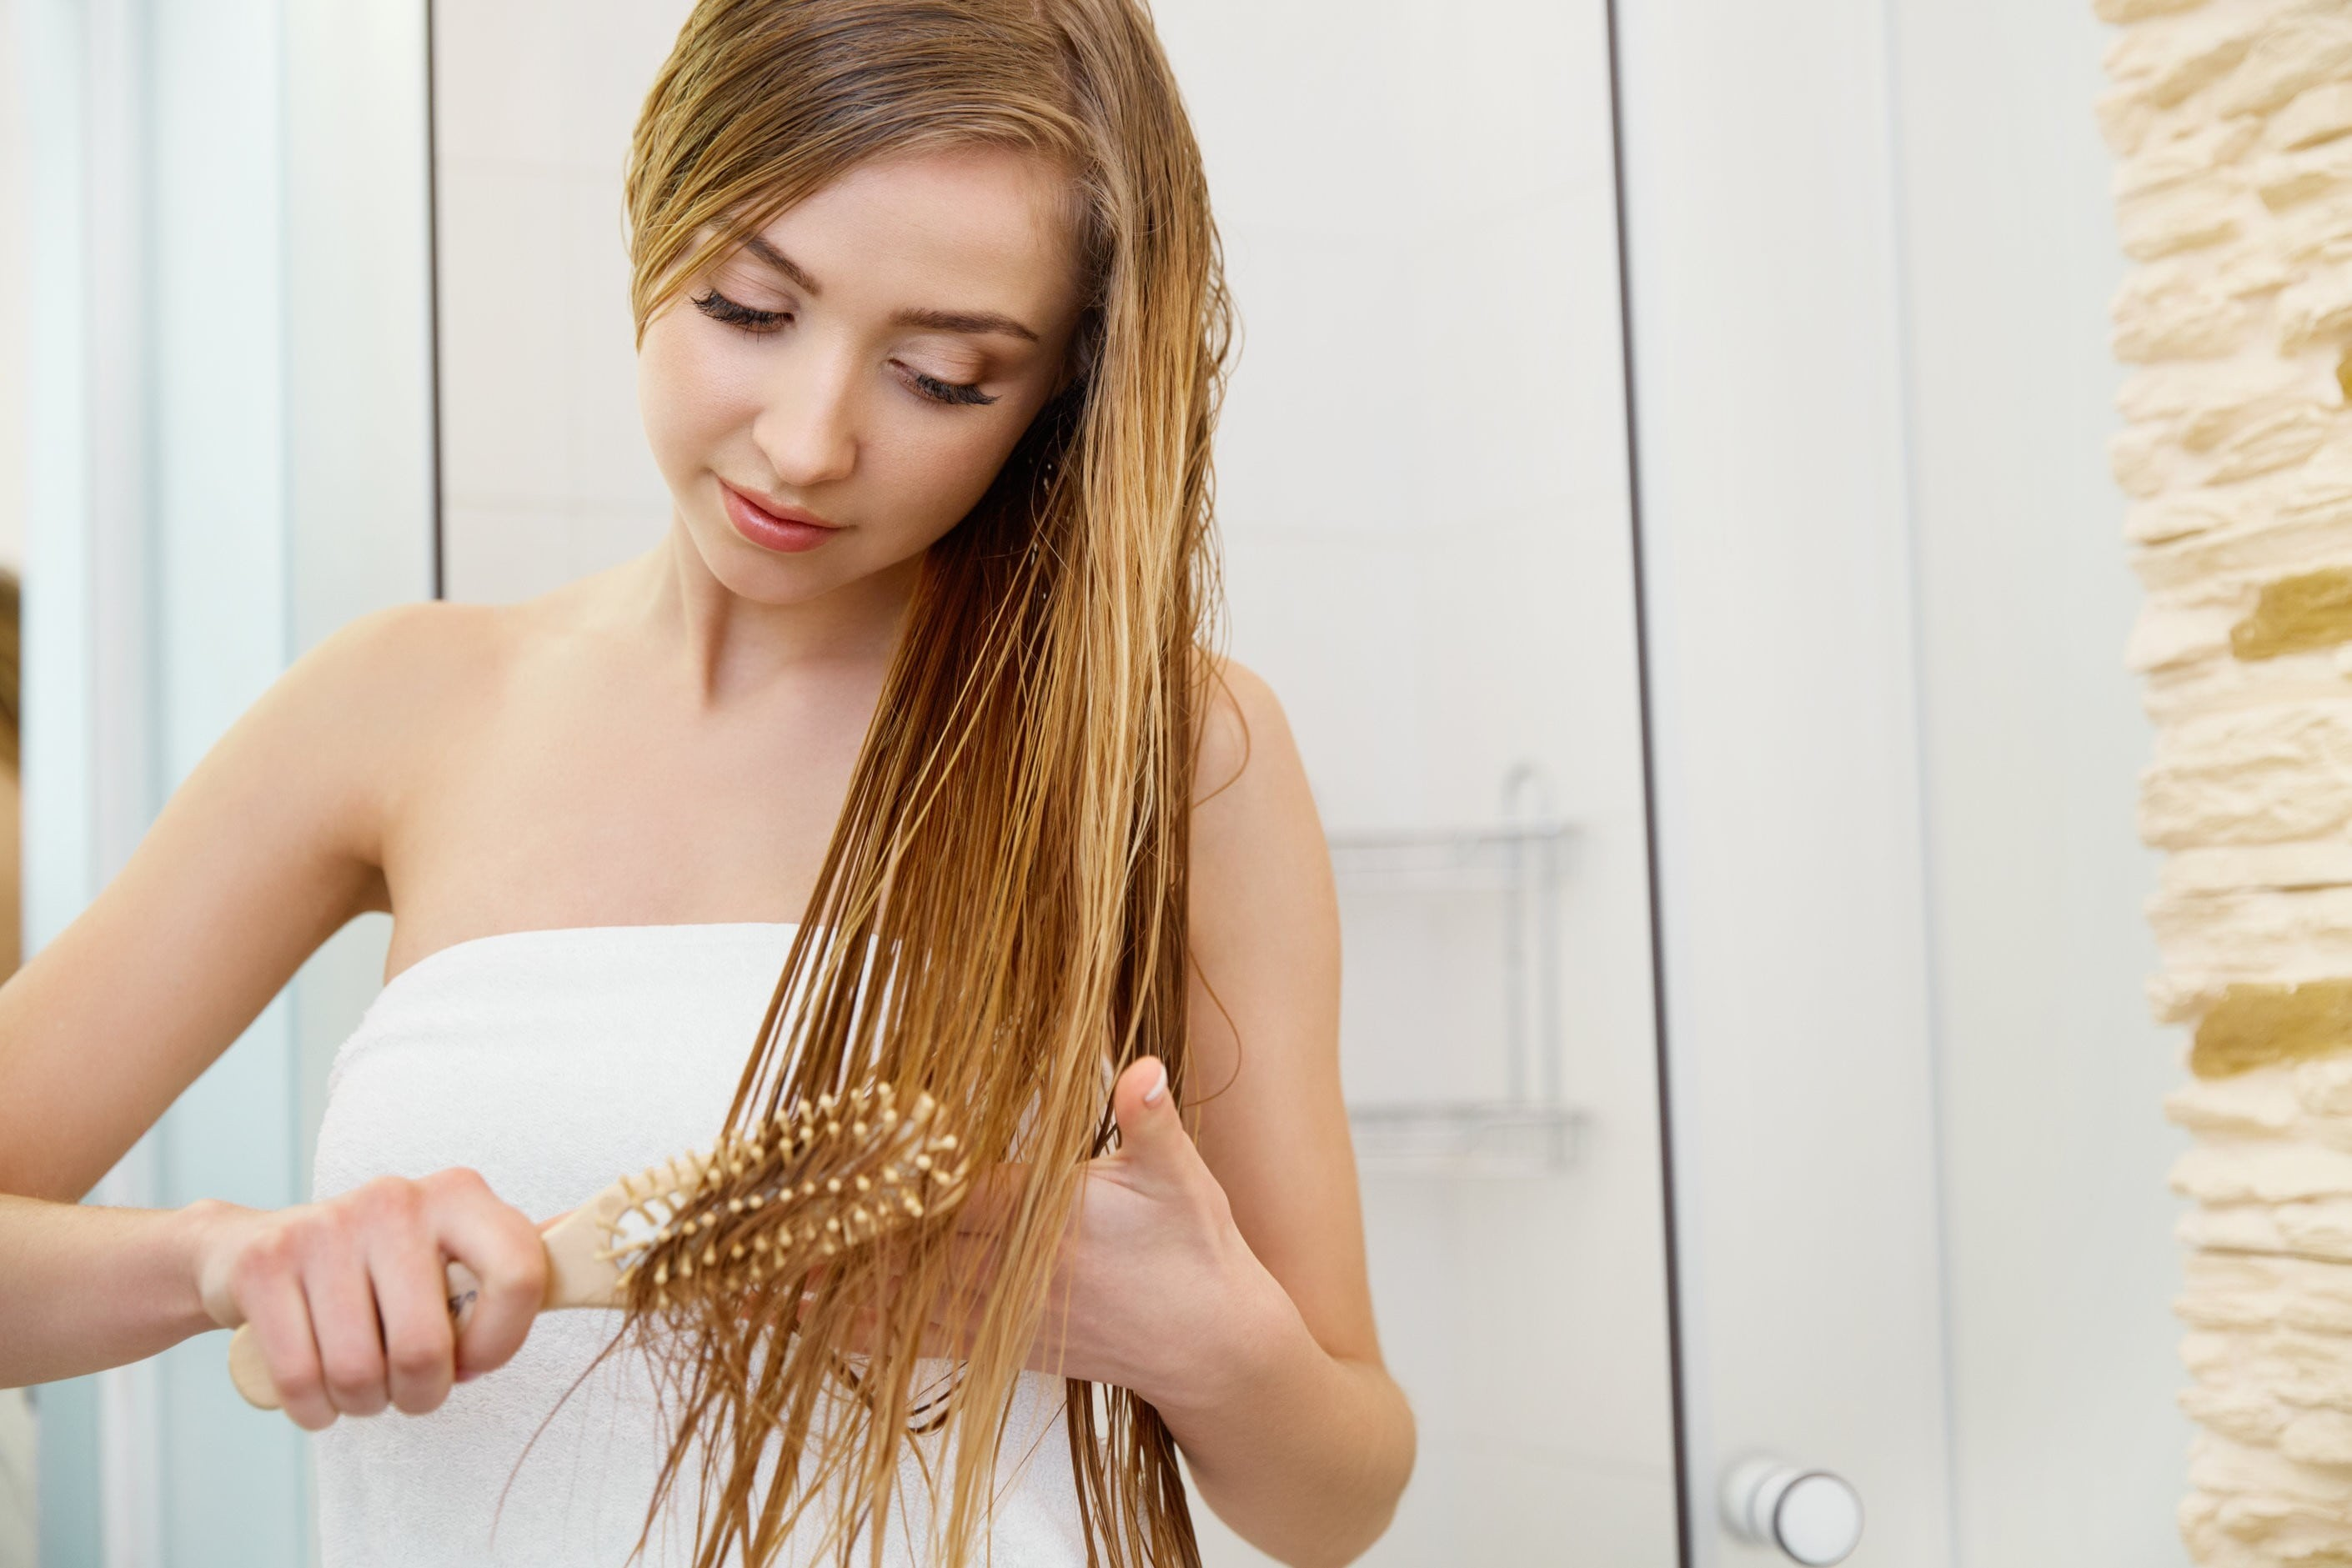 woman wearing a white towel, whilst brushing her wet hair.